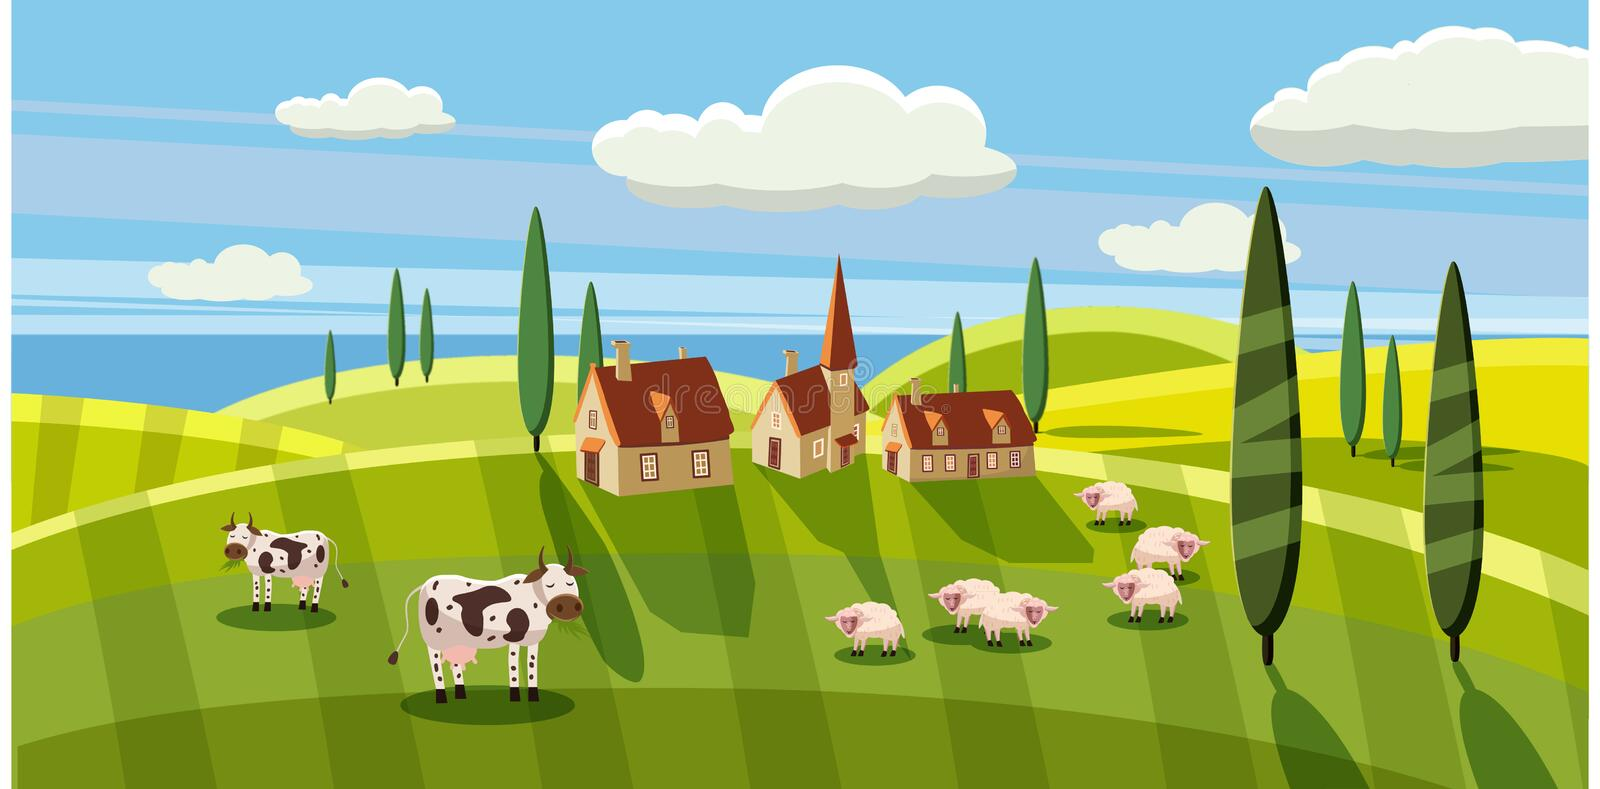 Lovely country rural landscape, cow sheep grazing, farm, flowers, pasture, Cartoon style, vector illustration stock illustration